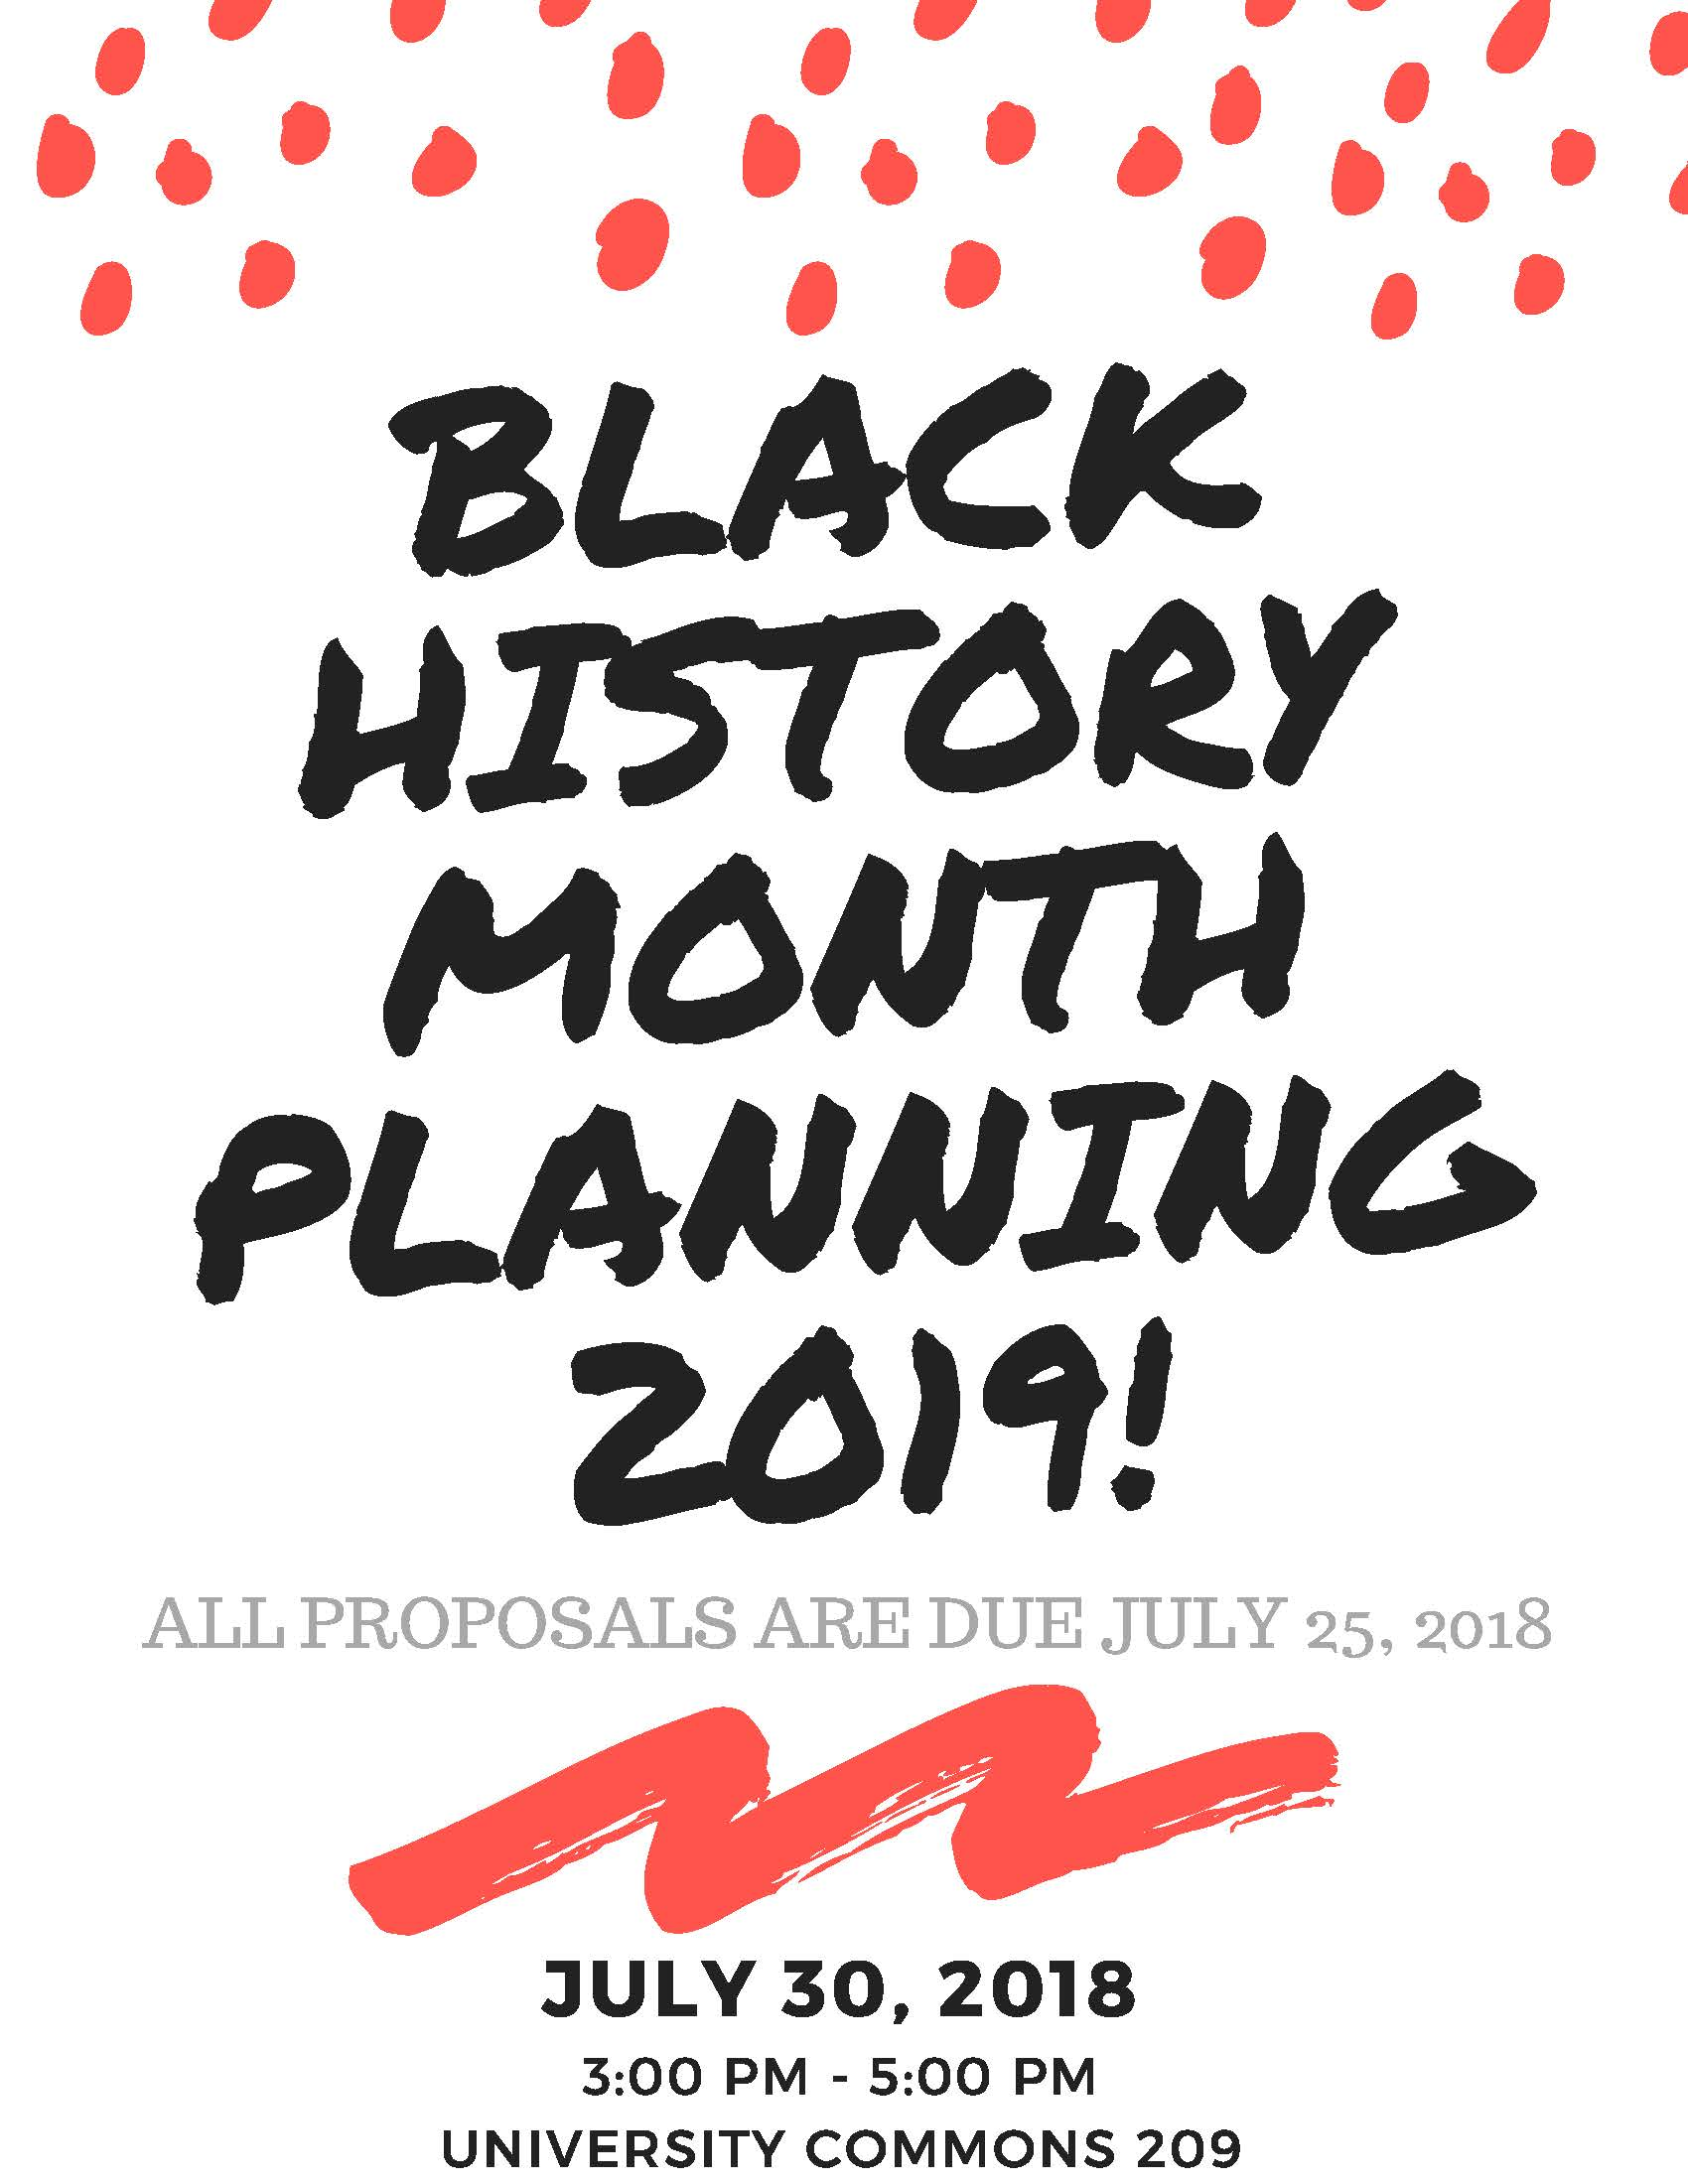 Black History Month Planning Picture